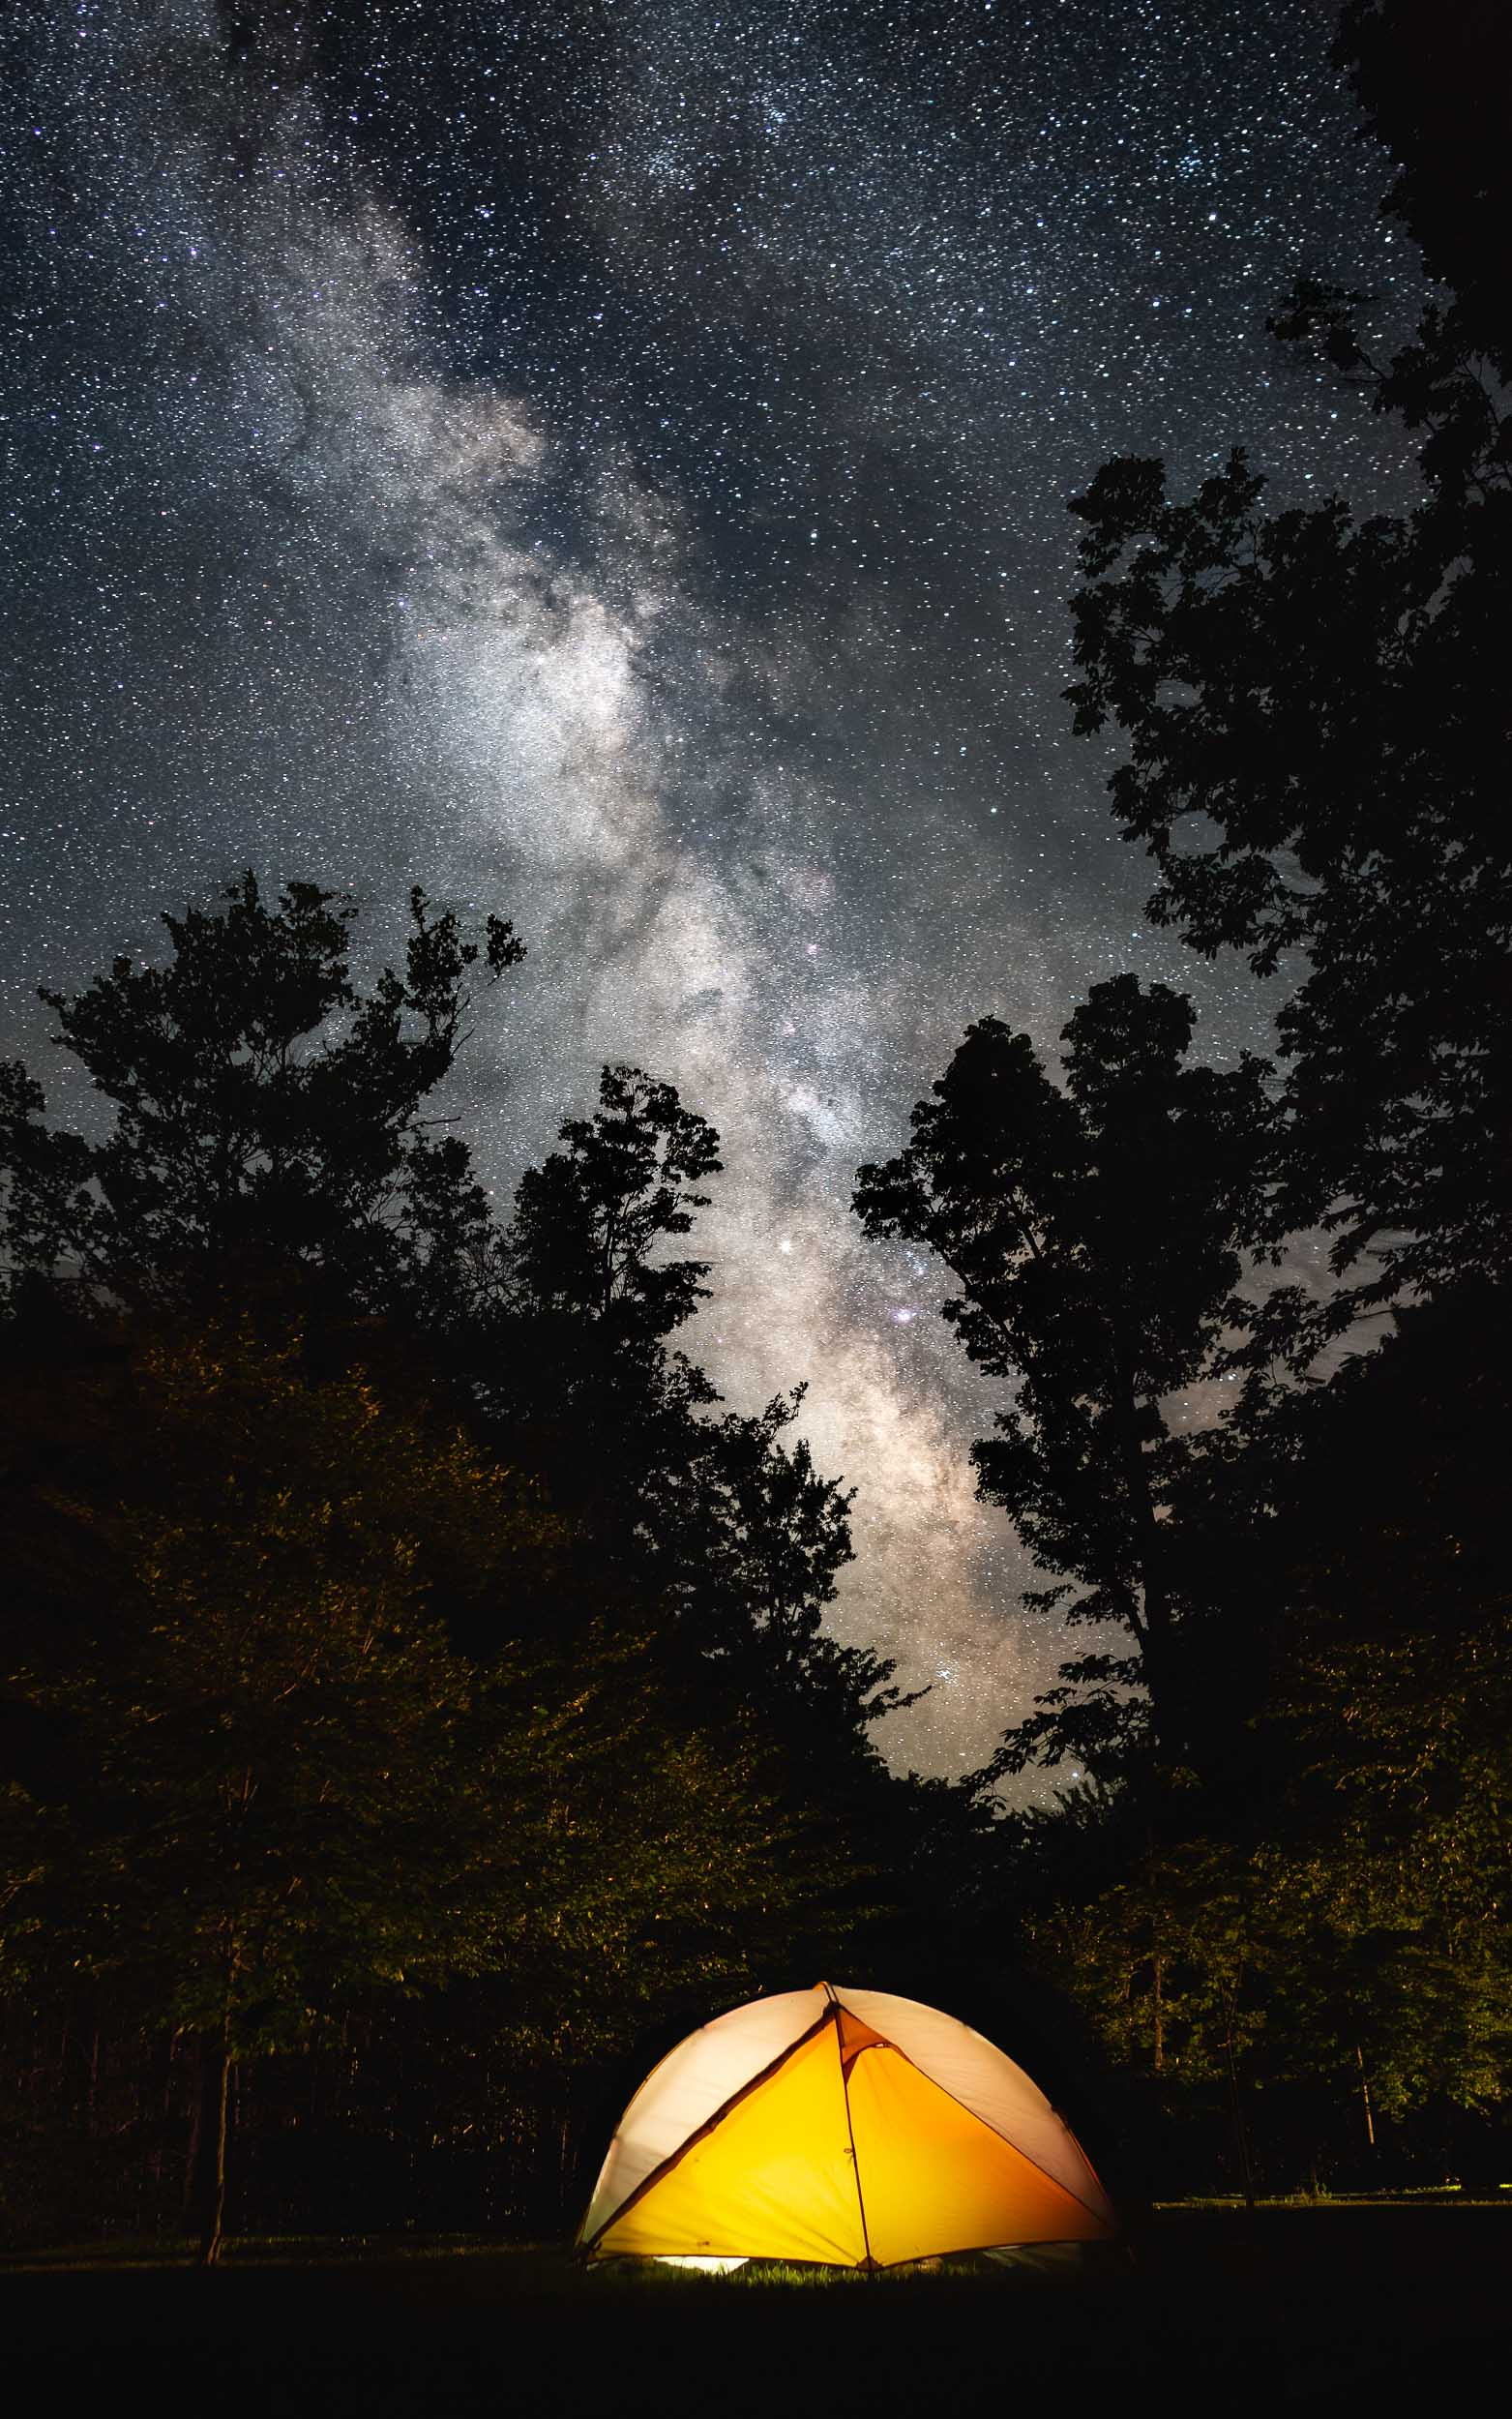 An illuminated tent on a campsite in Cherry Springs State Park in northern Central Pennsylvania, an official Dark Sky site where stars are perfectly visible as well as the Milky Way.